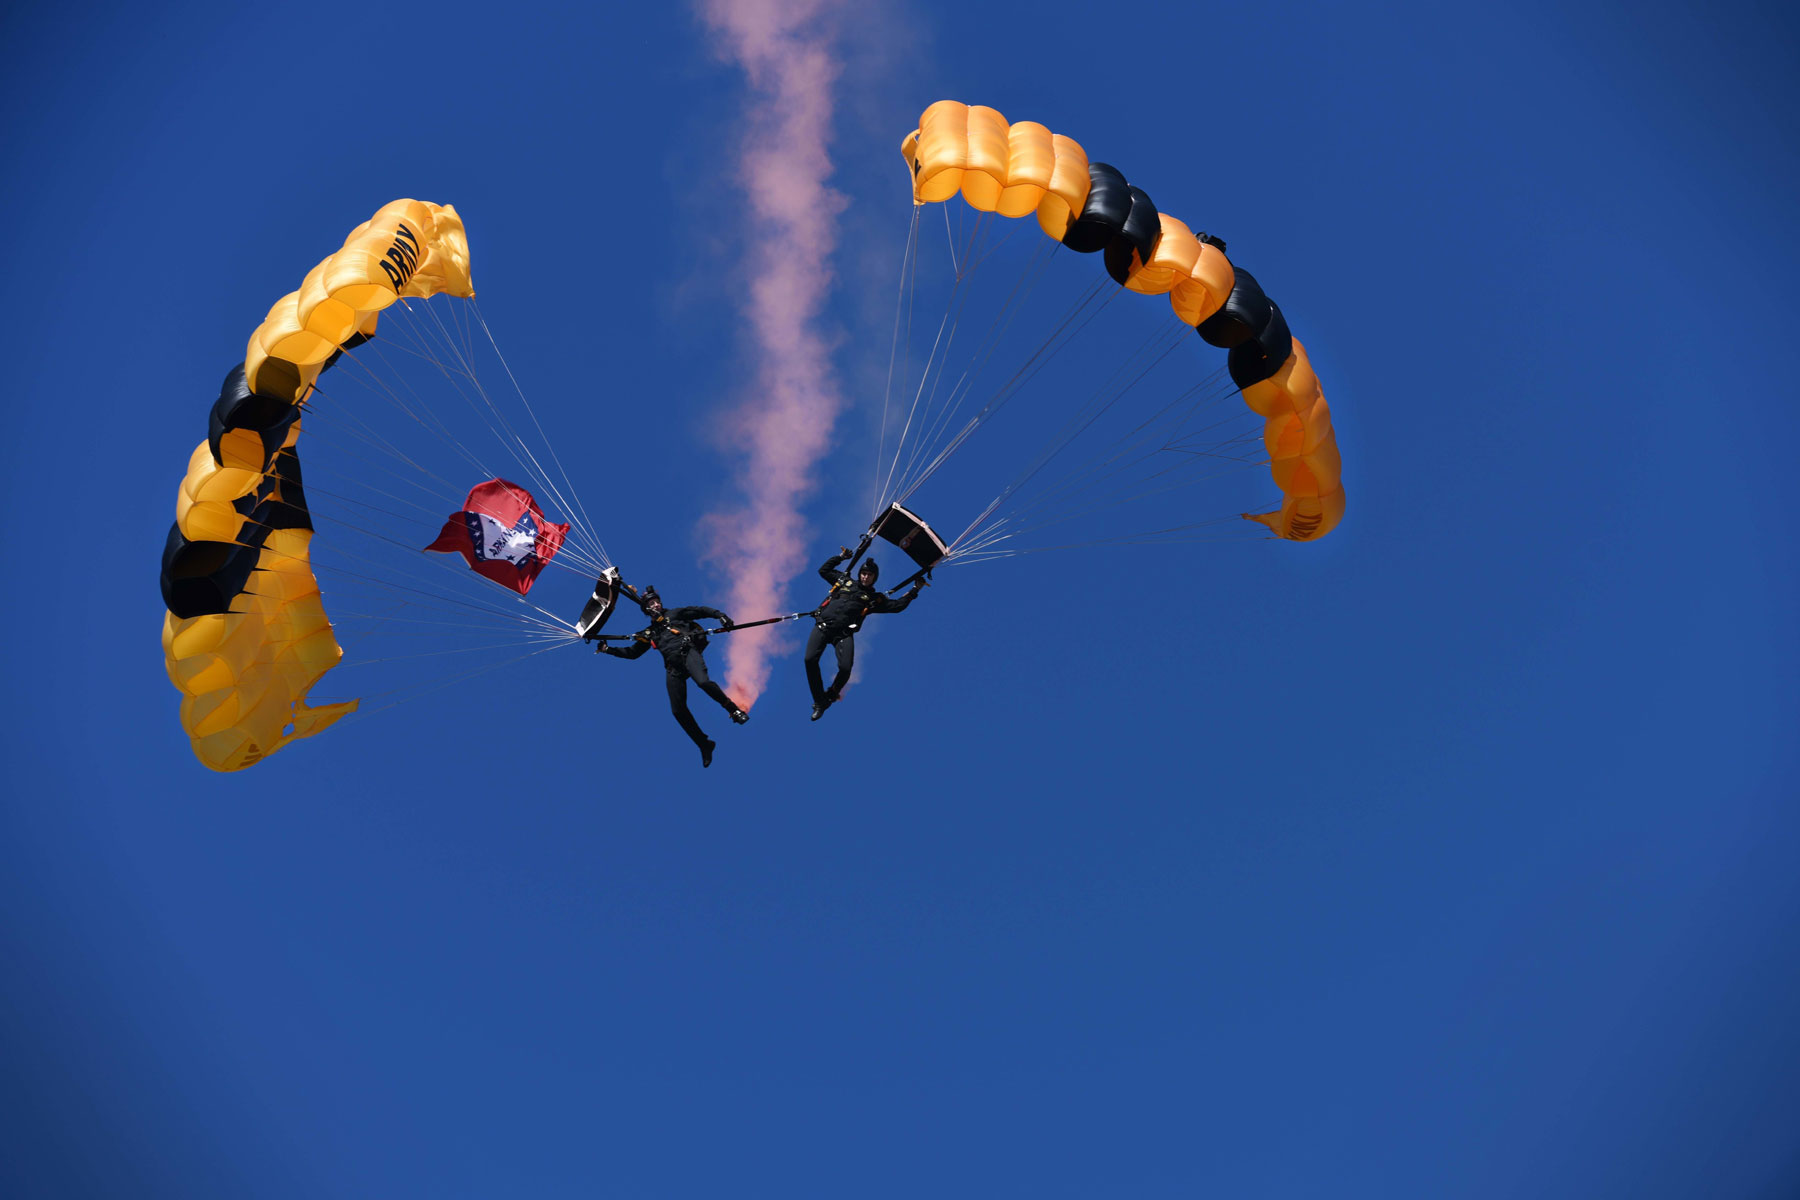 Condition of One Injured Army Golden Knights Member Upgraded